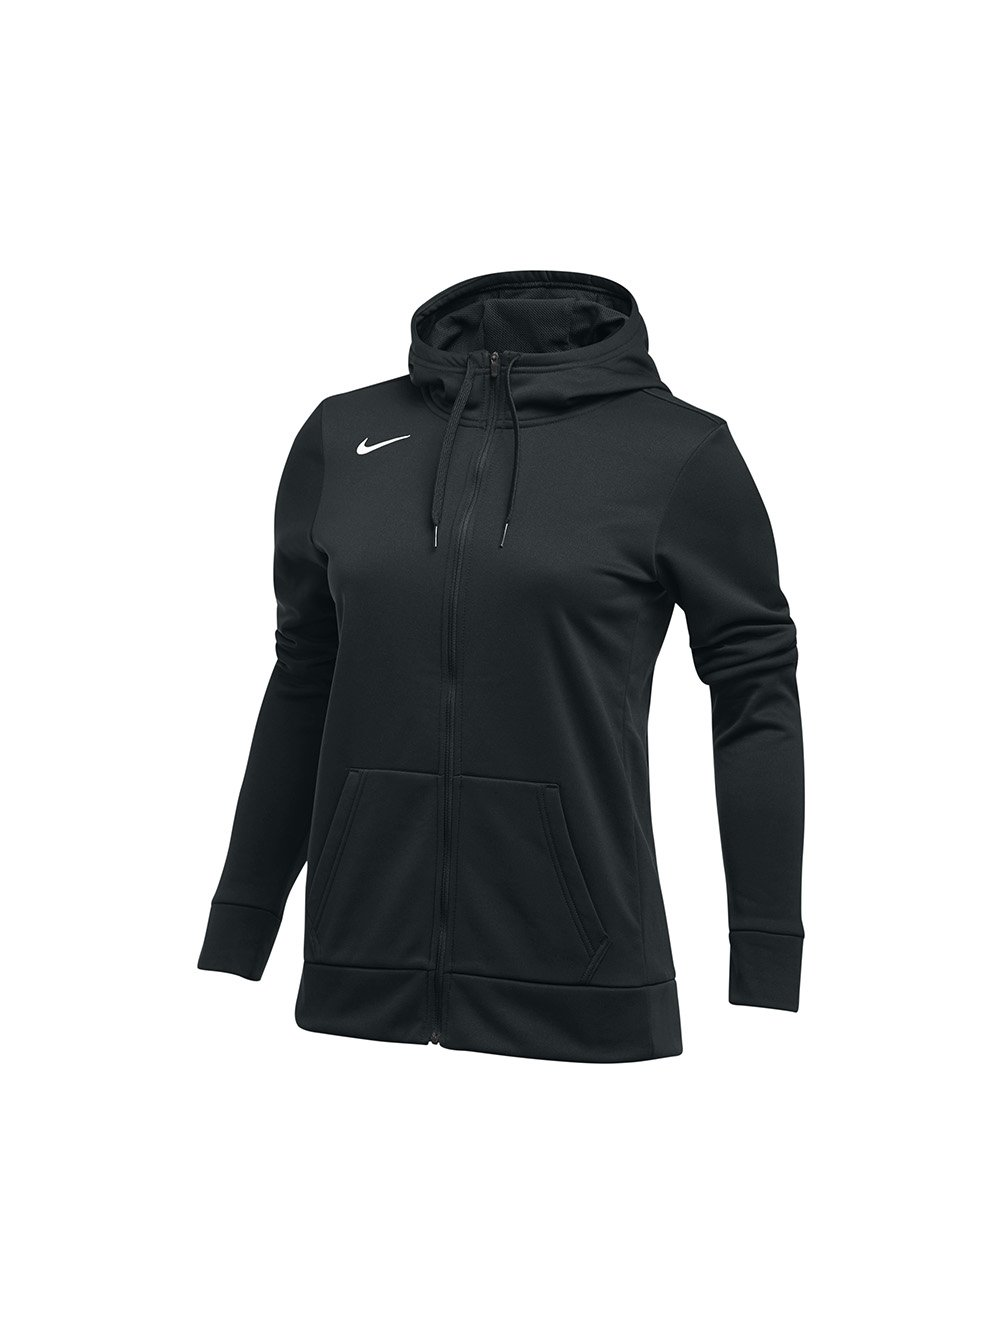 Women's Nike Thrma All Time Full Zip Hoodie, Black, Small